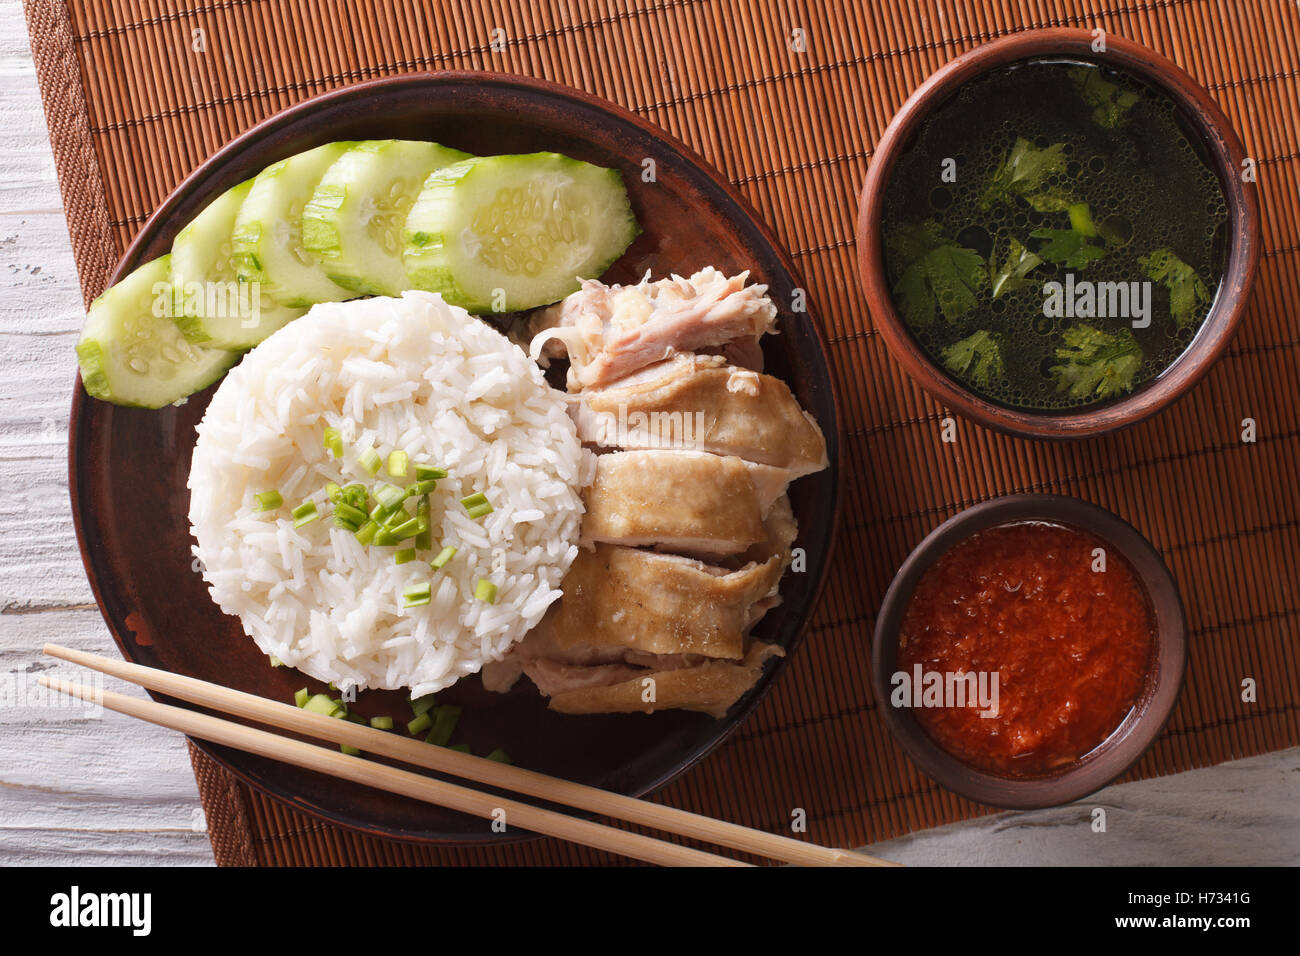 Hainanese Chicken Rice Close Up On A Table Chili Sauce And Broth Horizontal View From Above